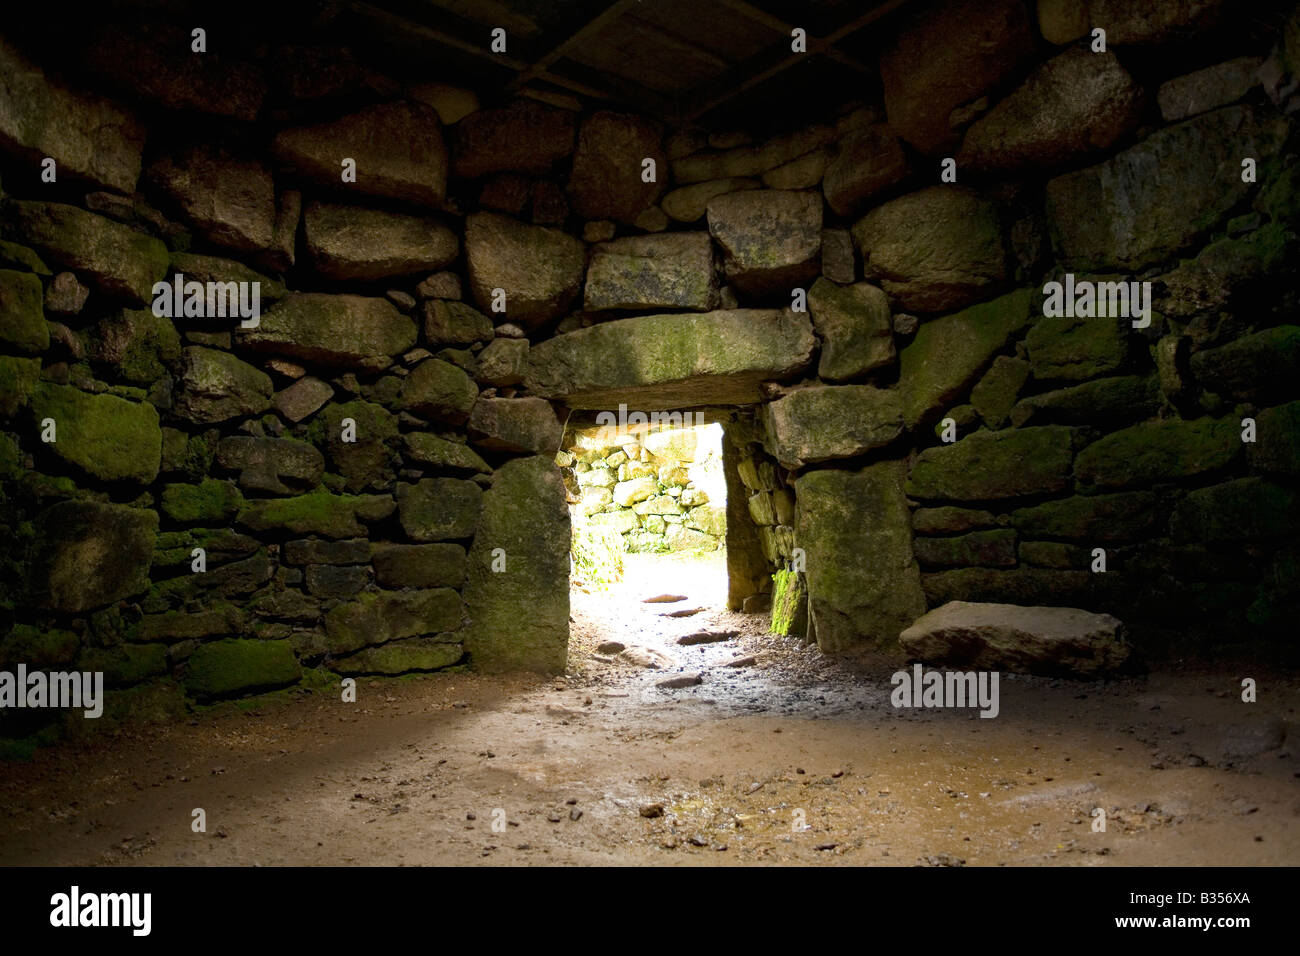 Carn Euny Stone Age village underground round chamber near Sancreed West Penwith Cornwall England - Stock Image